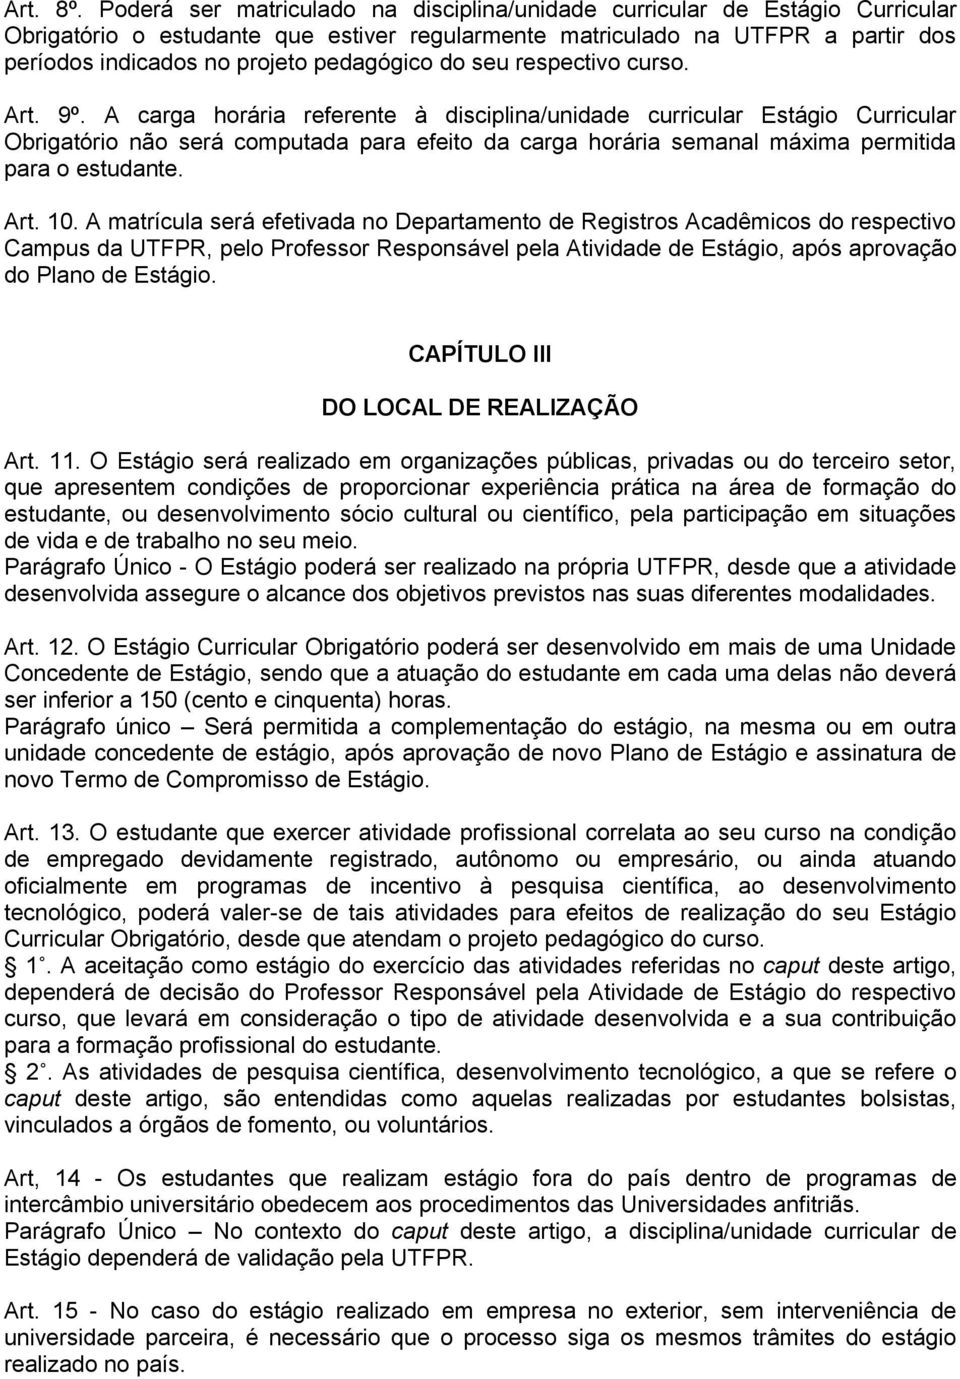 pedagógico do seu respectivo curso. Art. 9º.